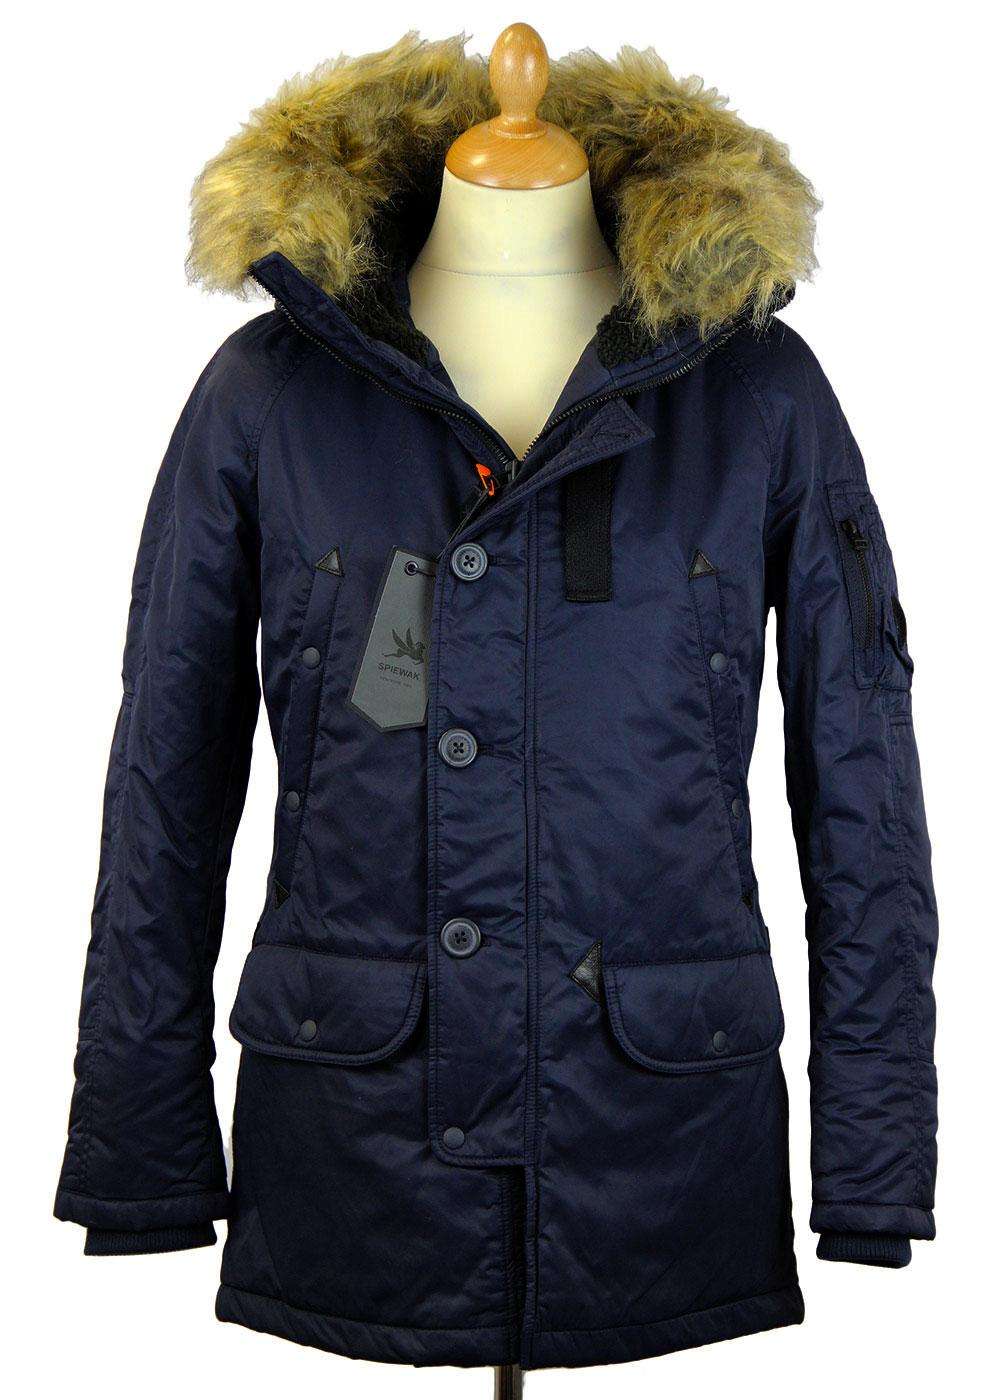 Men's Waterproof N3-B Snorkel Parka with Fur Trimmed Hood. from $ 29 Prime. out of 5 stars Alpha Industries. Men's N-3B Parka Coat. from $ 00 Prime. out of 5 stars Tommy Hilfiger. Men's Full Length Nylon Quilted Snorkel Coat with .